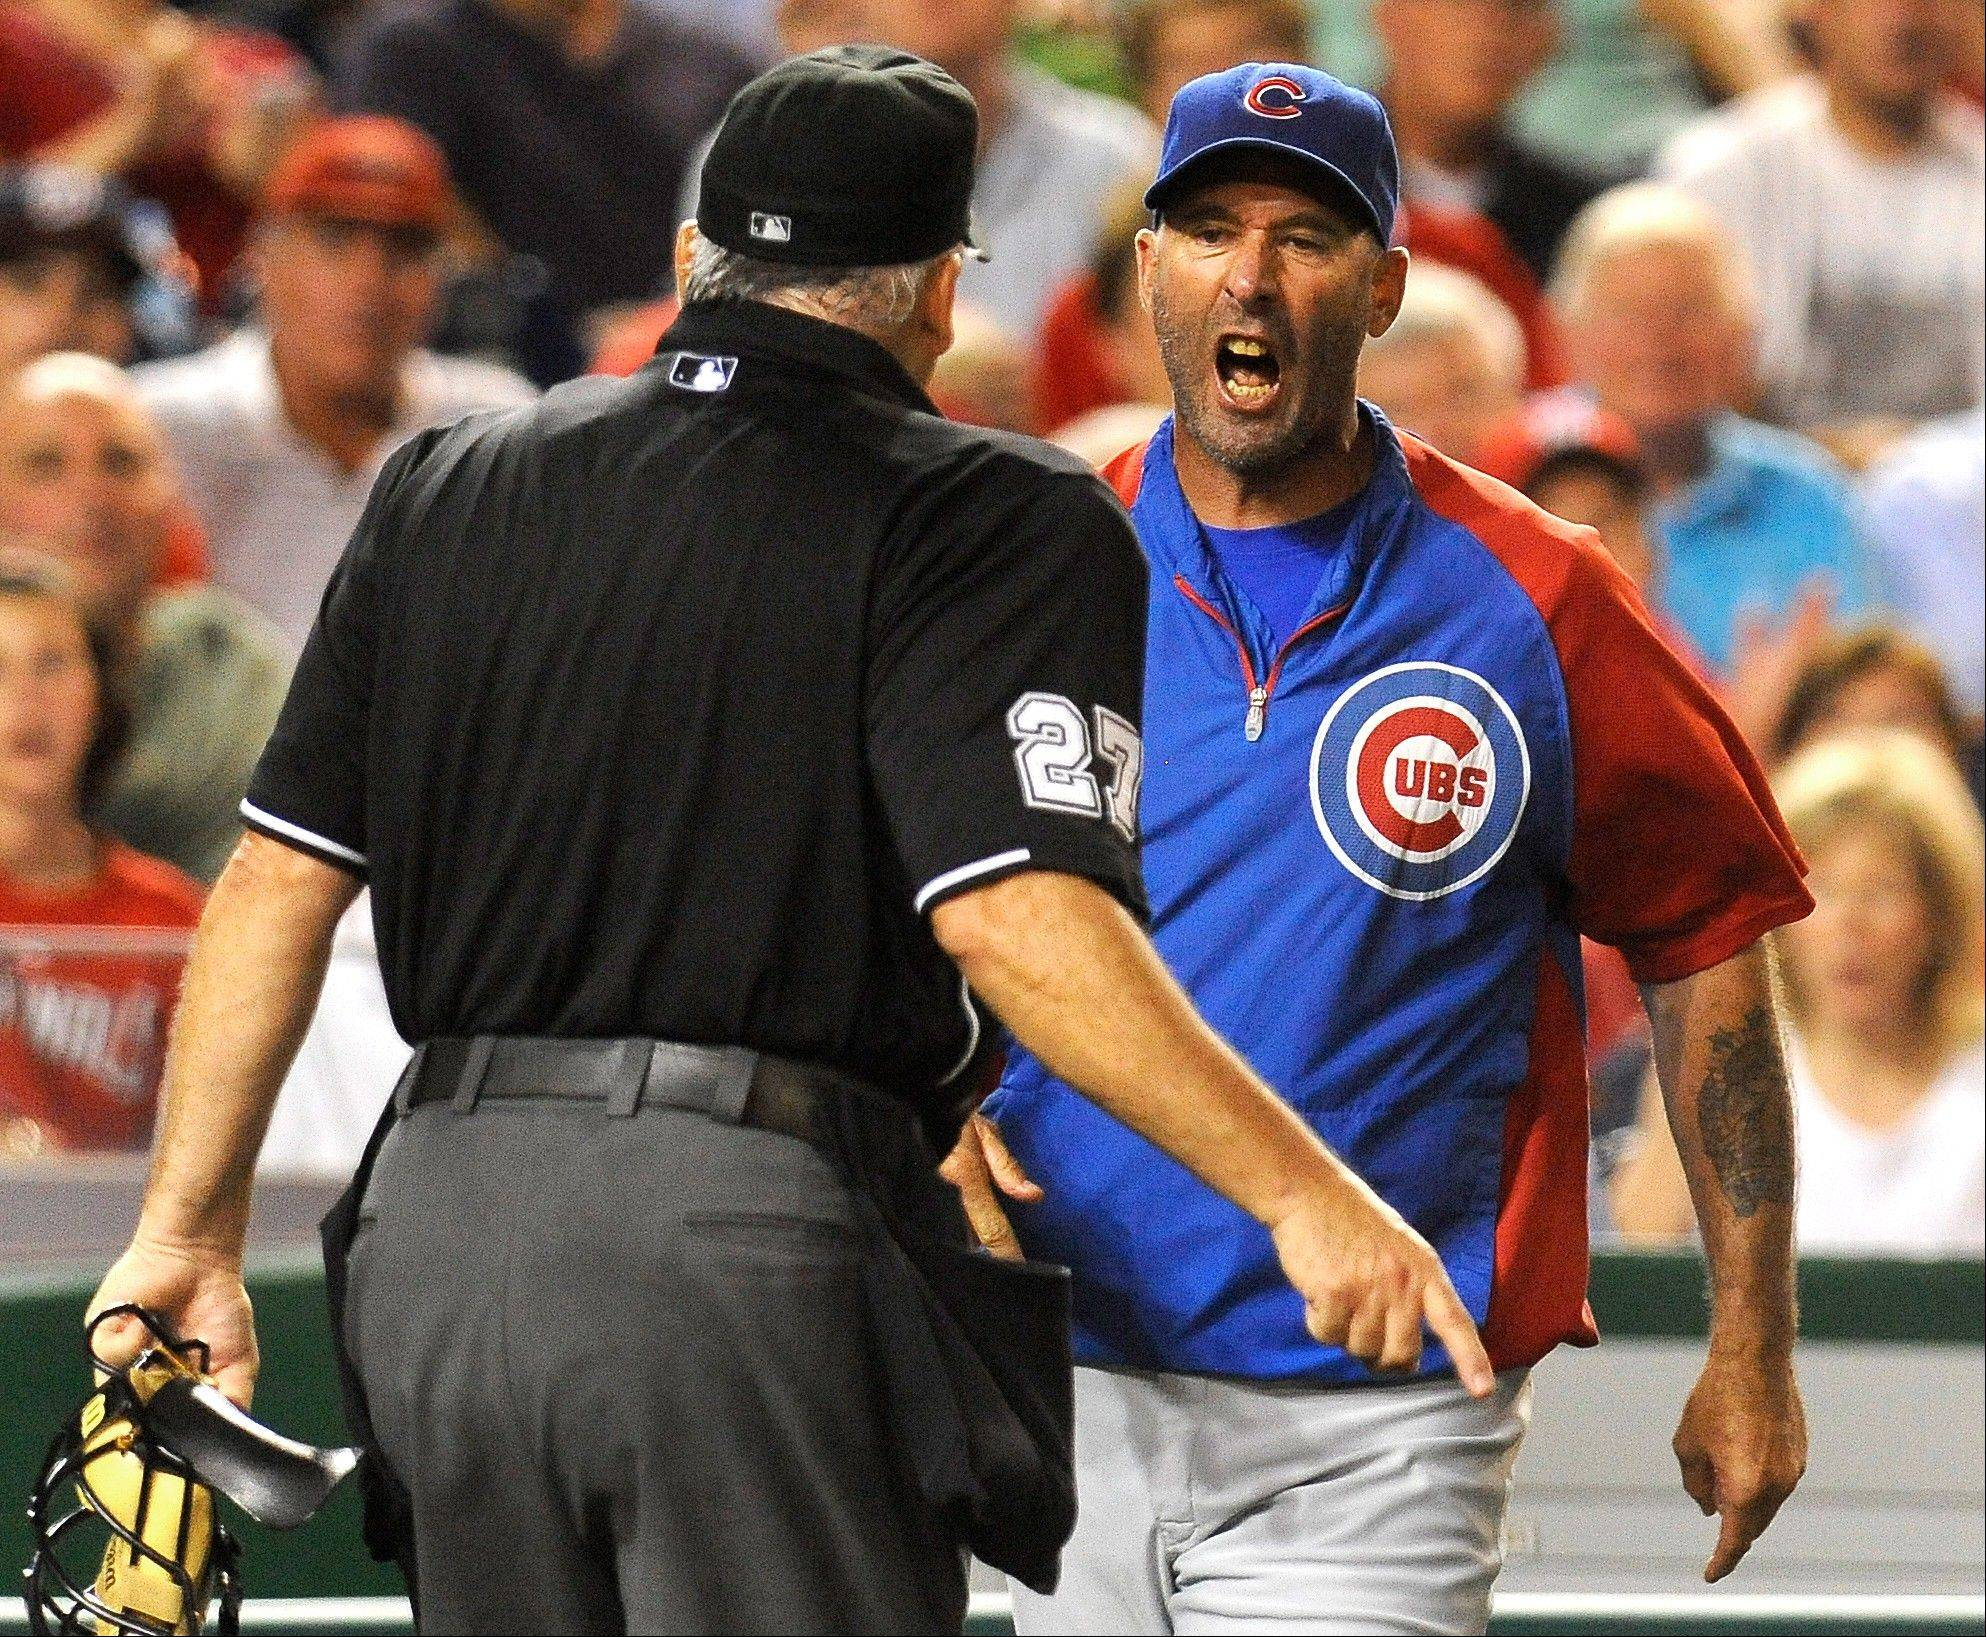 Chicago Cubs manager Dale Sveum, right, confronts home plate umpire Larry Vanover after being thrown out of a baseball game in the fifth inning against the Washington Nationals at Nationals Park, Wednesday, Sept. 5, 2012, in Washington.